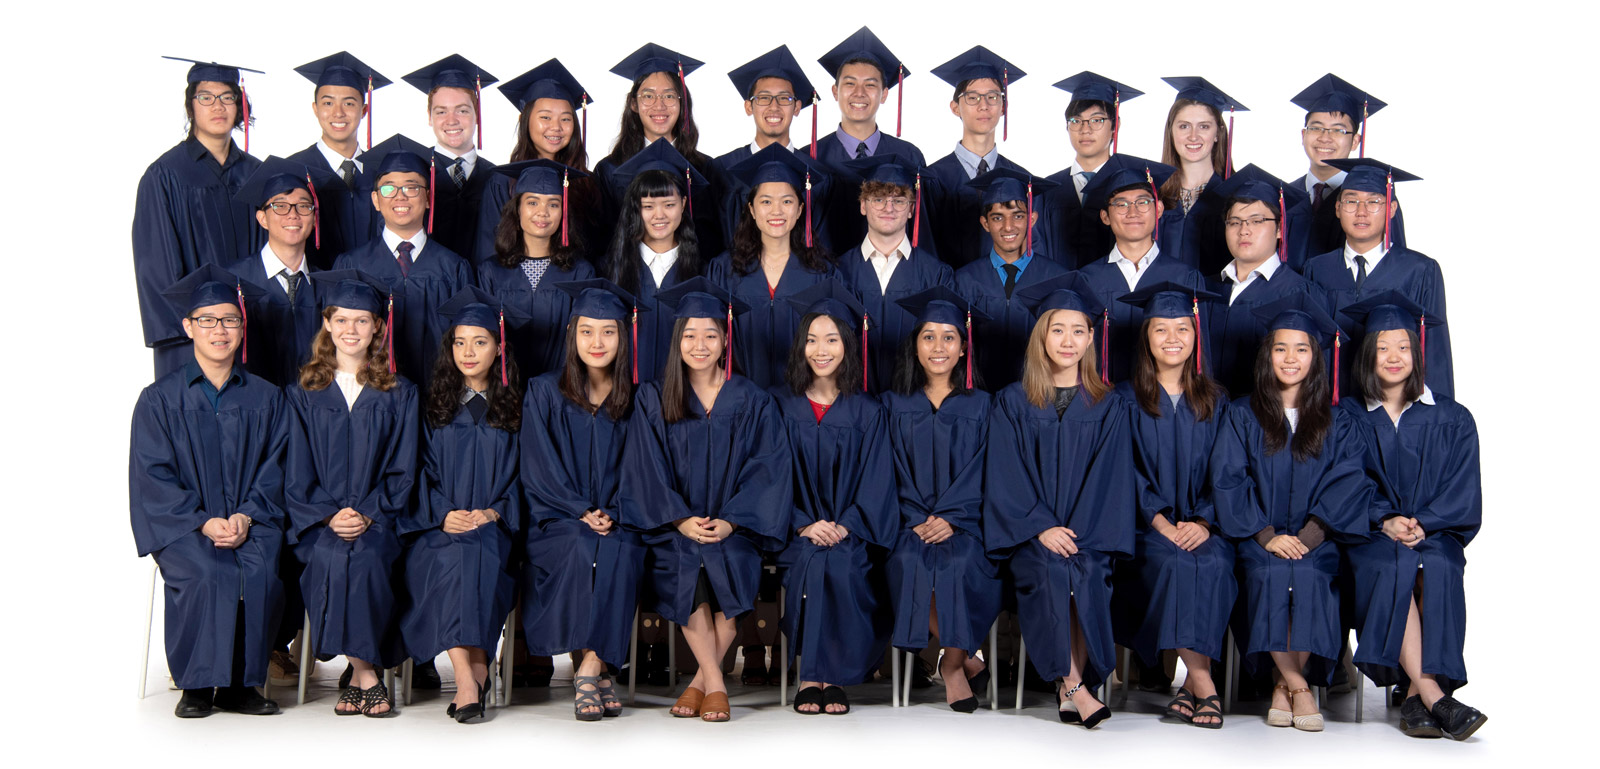 ICS Singapore Class of 2019 formal picture in gown